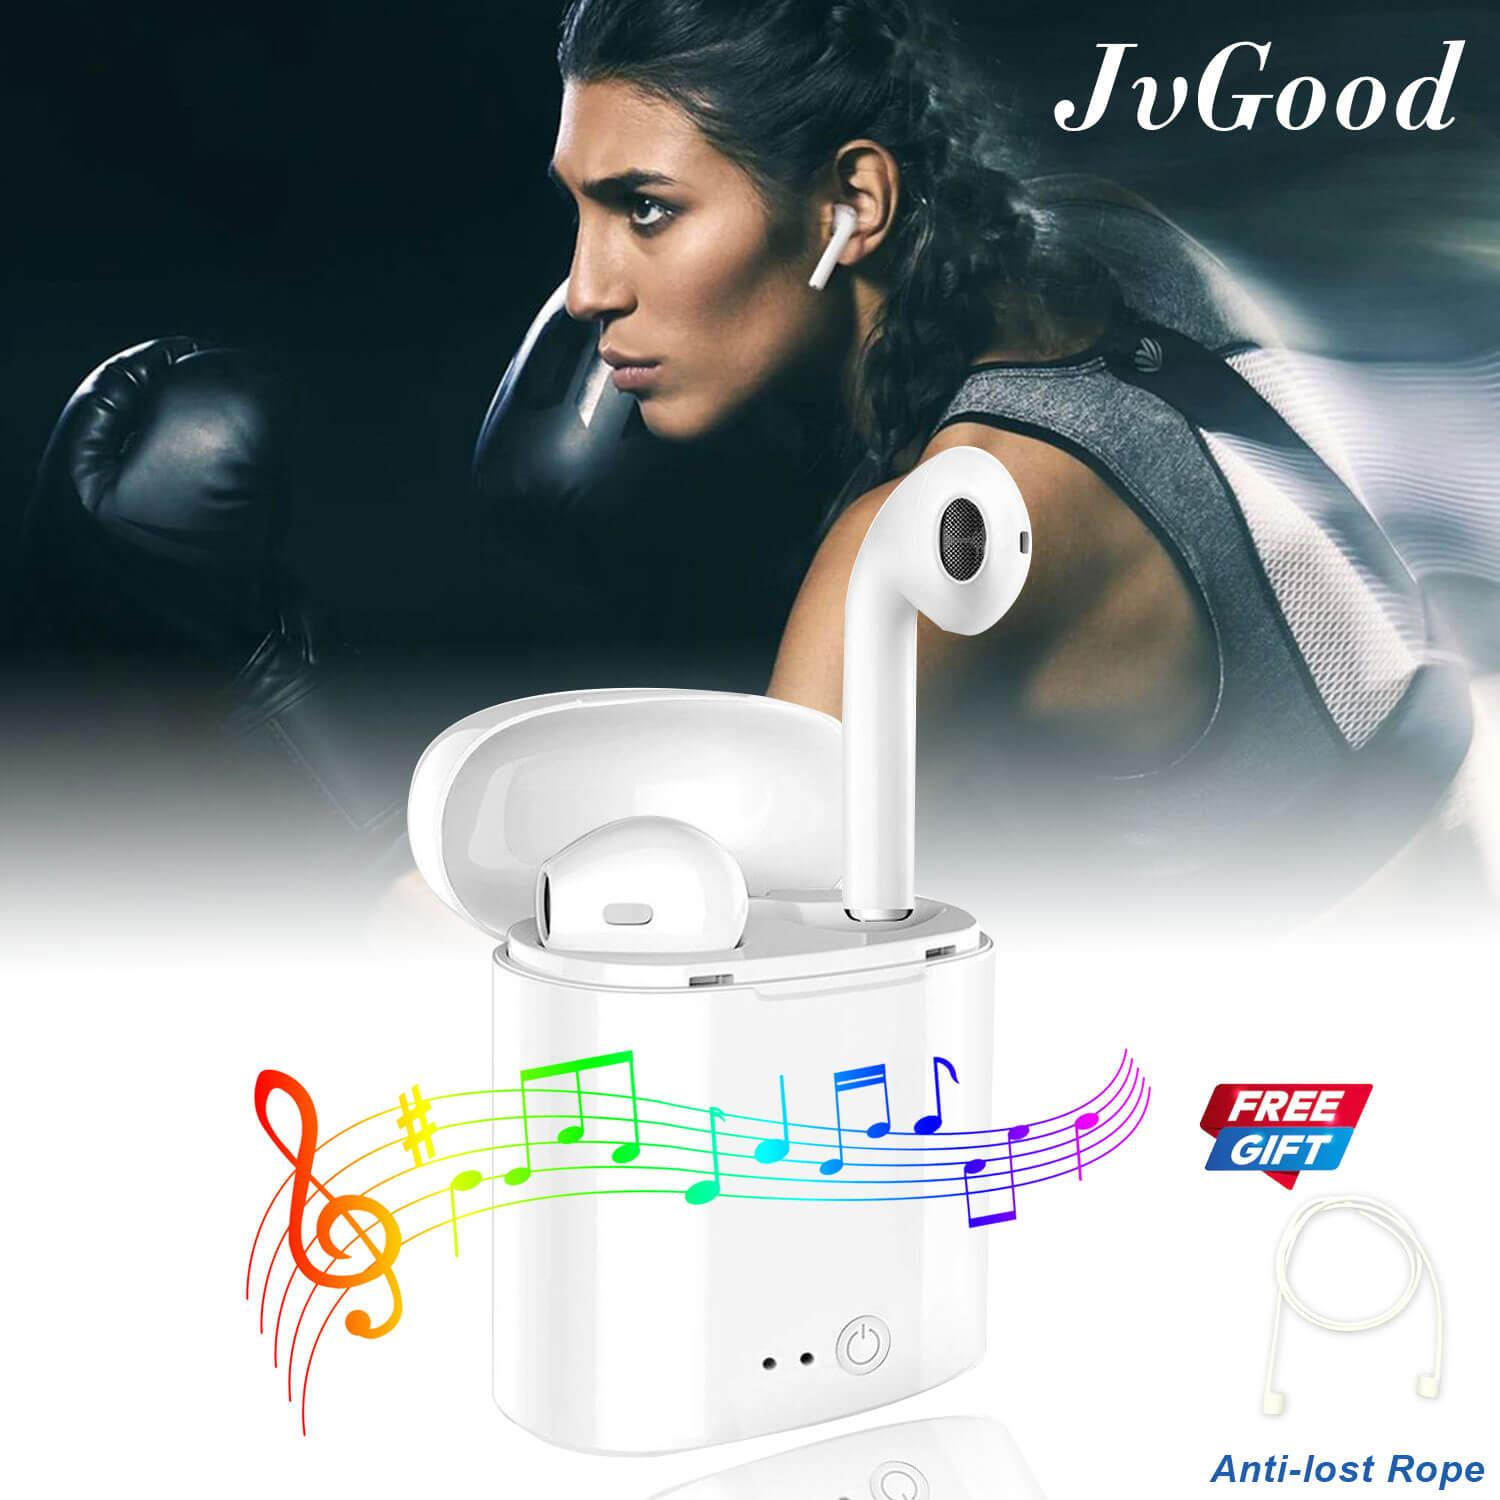 Jvgood Mini Bluetooth Wireless Earbuds In Ear Headphones Sweatproof Earphone Headsets Twins Stereo Earpiece Air Pods With Microphone With Free Anit-Lost Rope For All Mobile Phones By Jvgood.